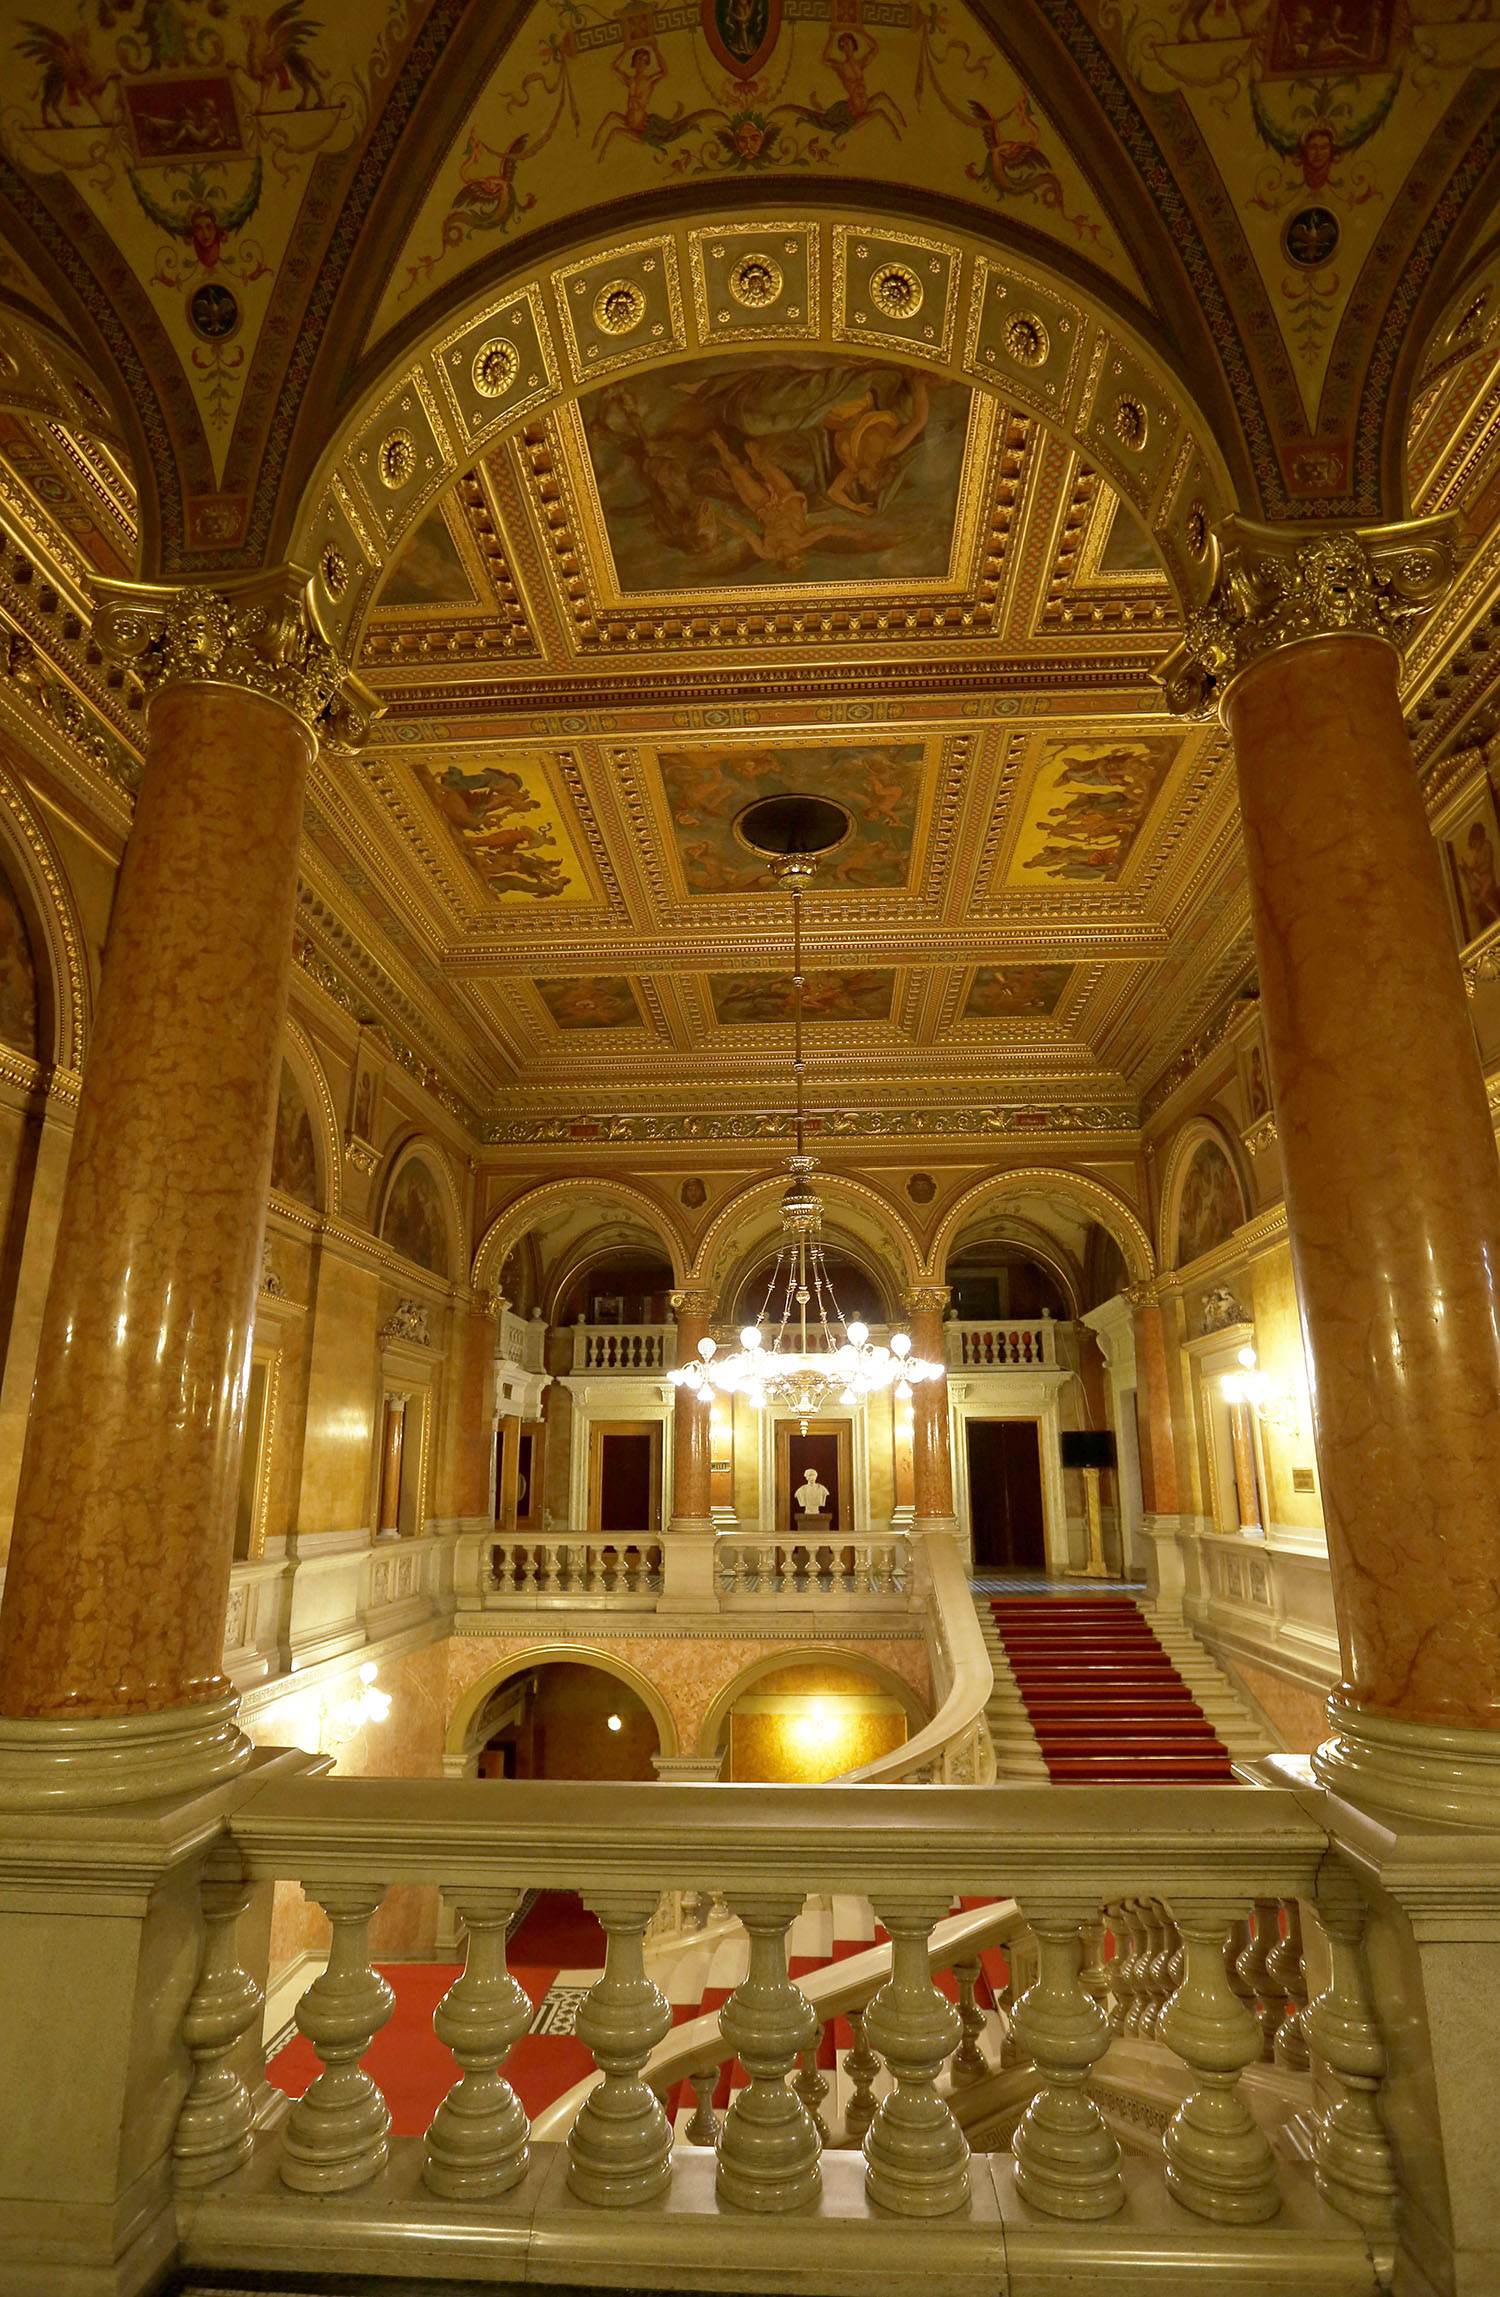 The Foyer of the Opera House